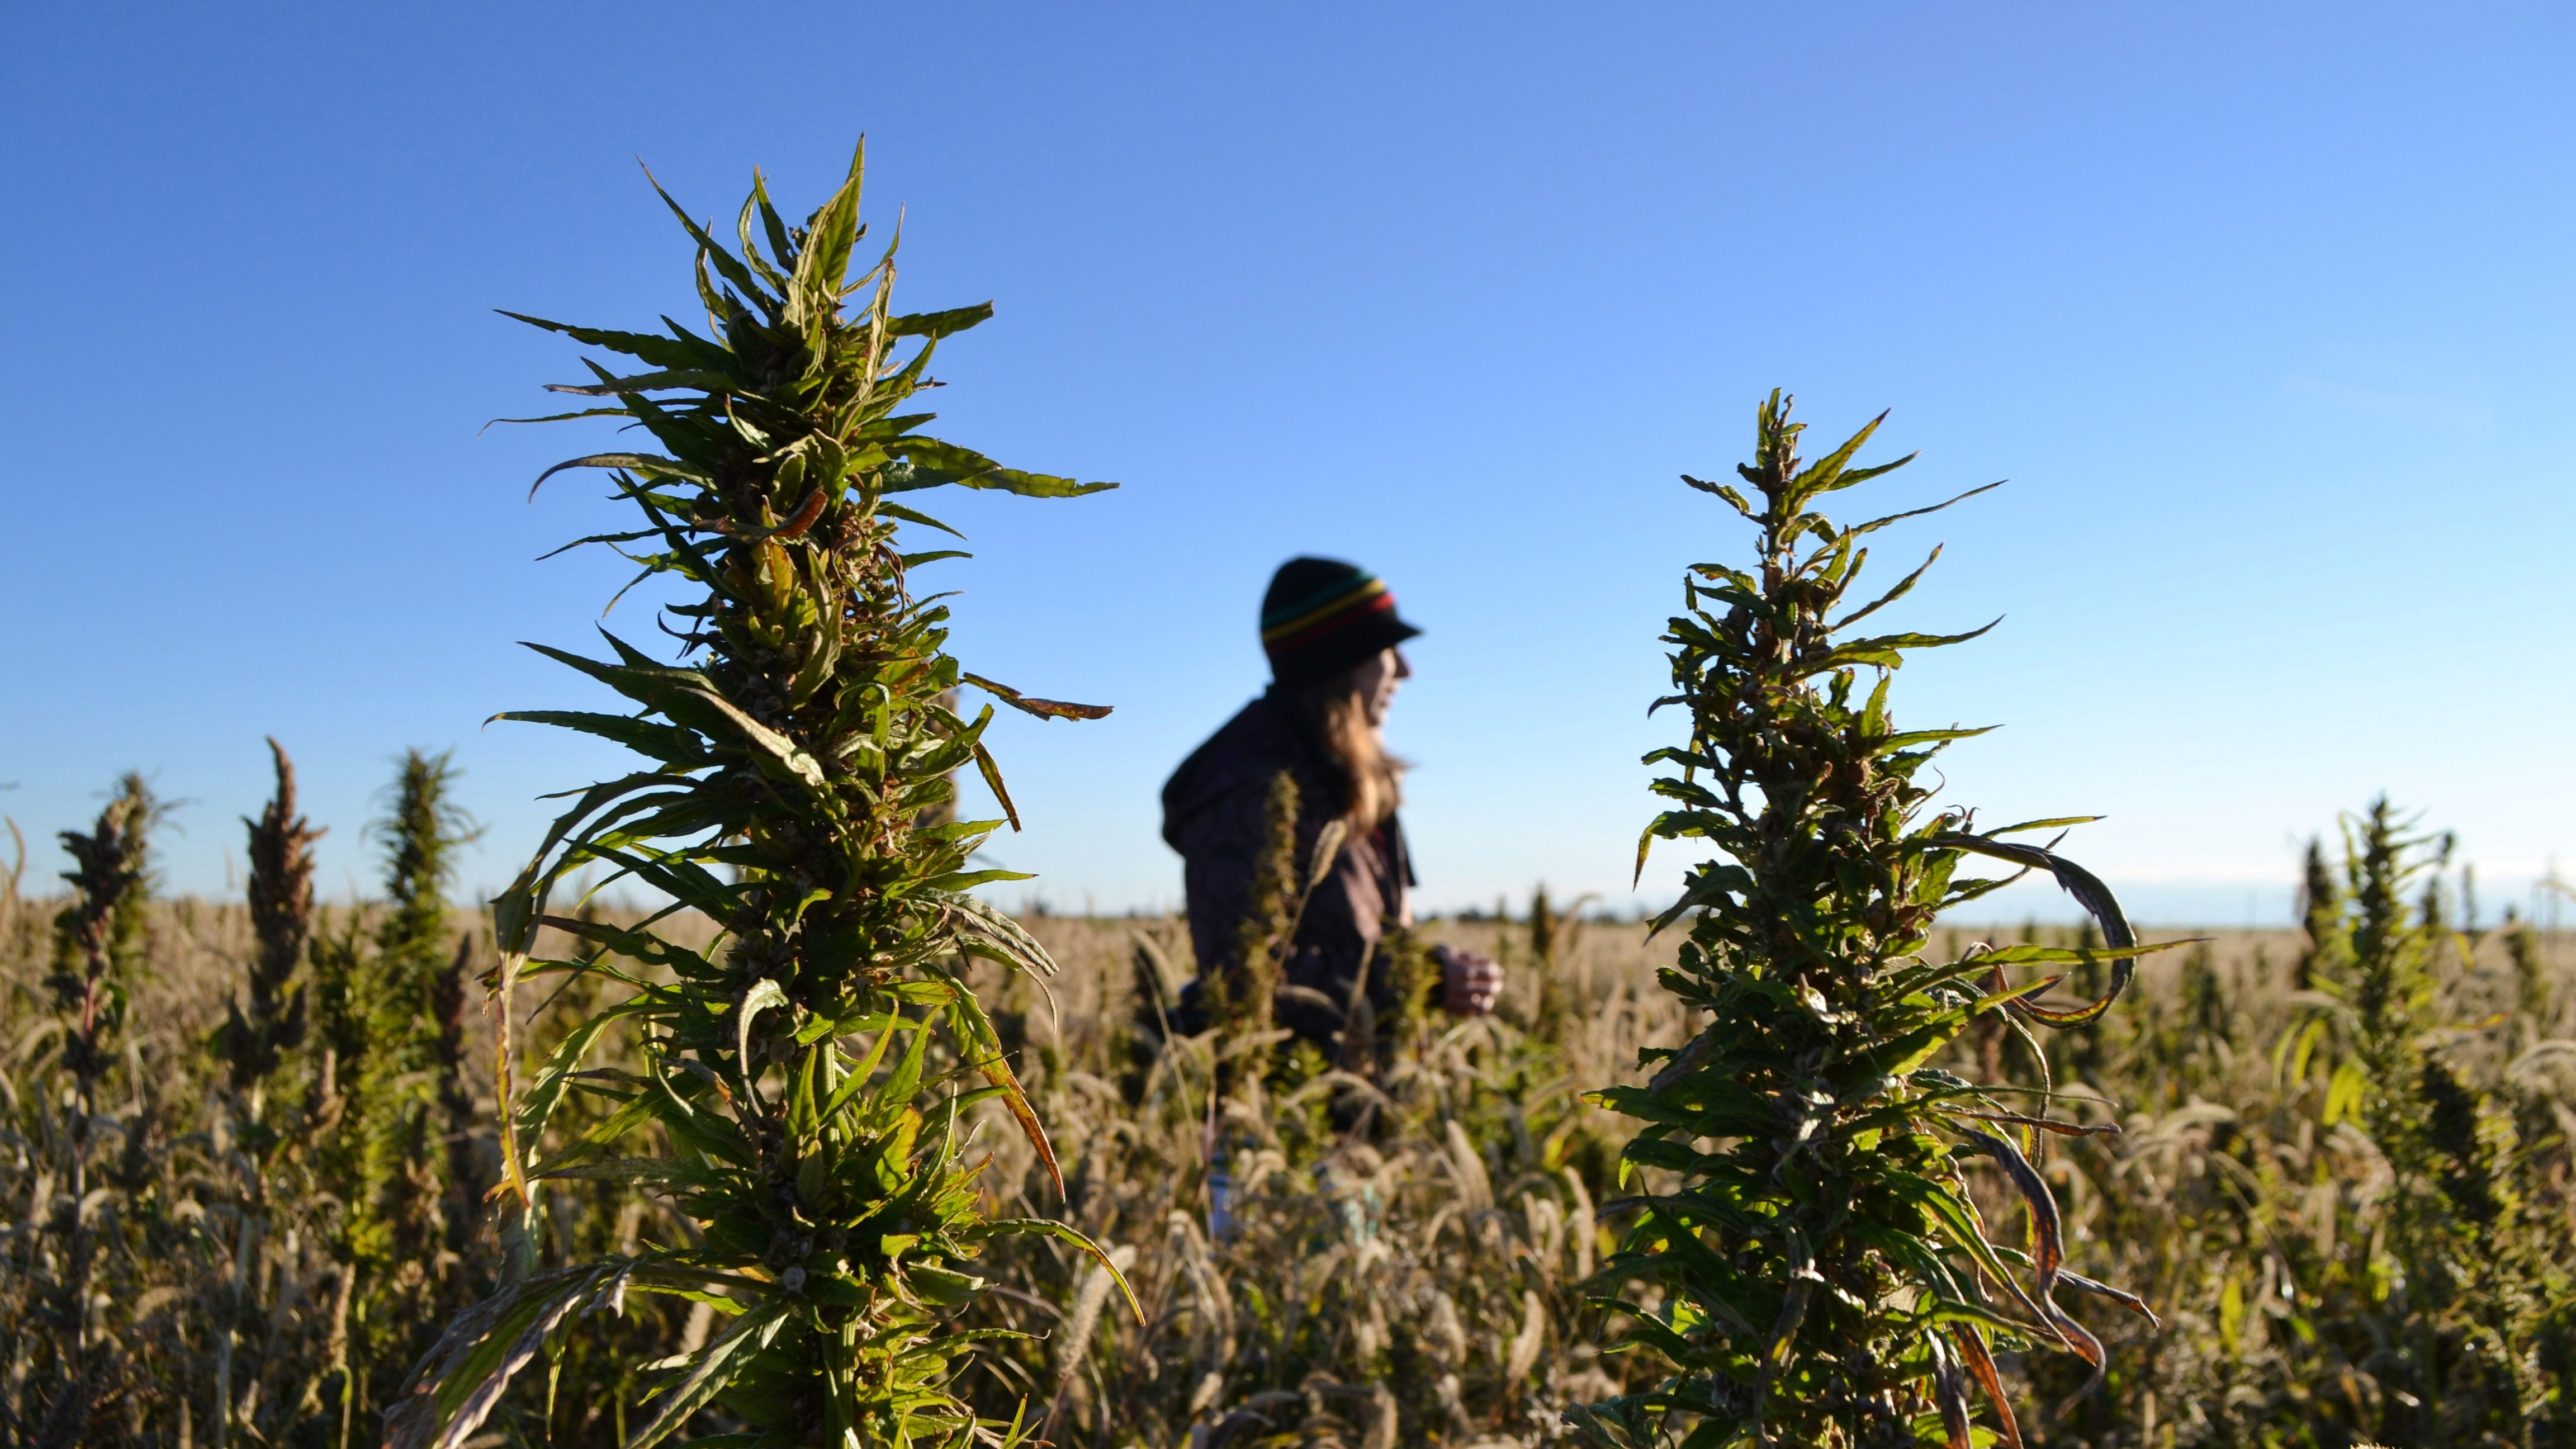 CBD from industrial hemp will be legal in US under 2018 Farm